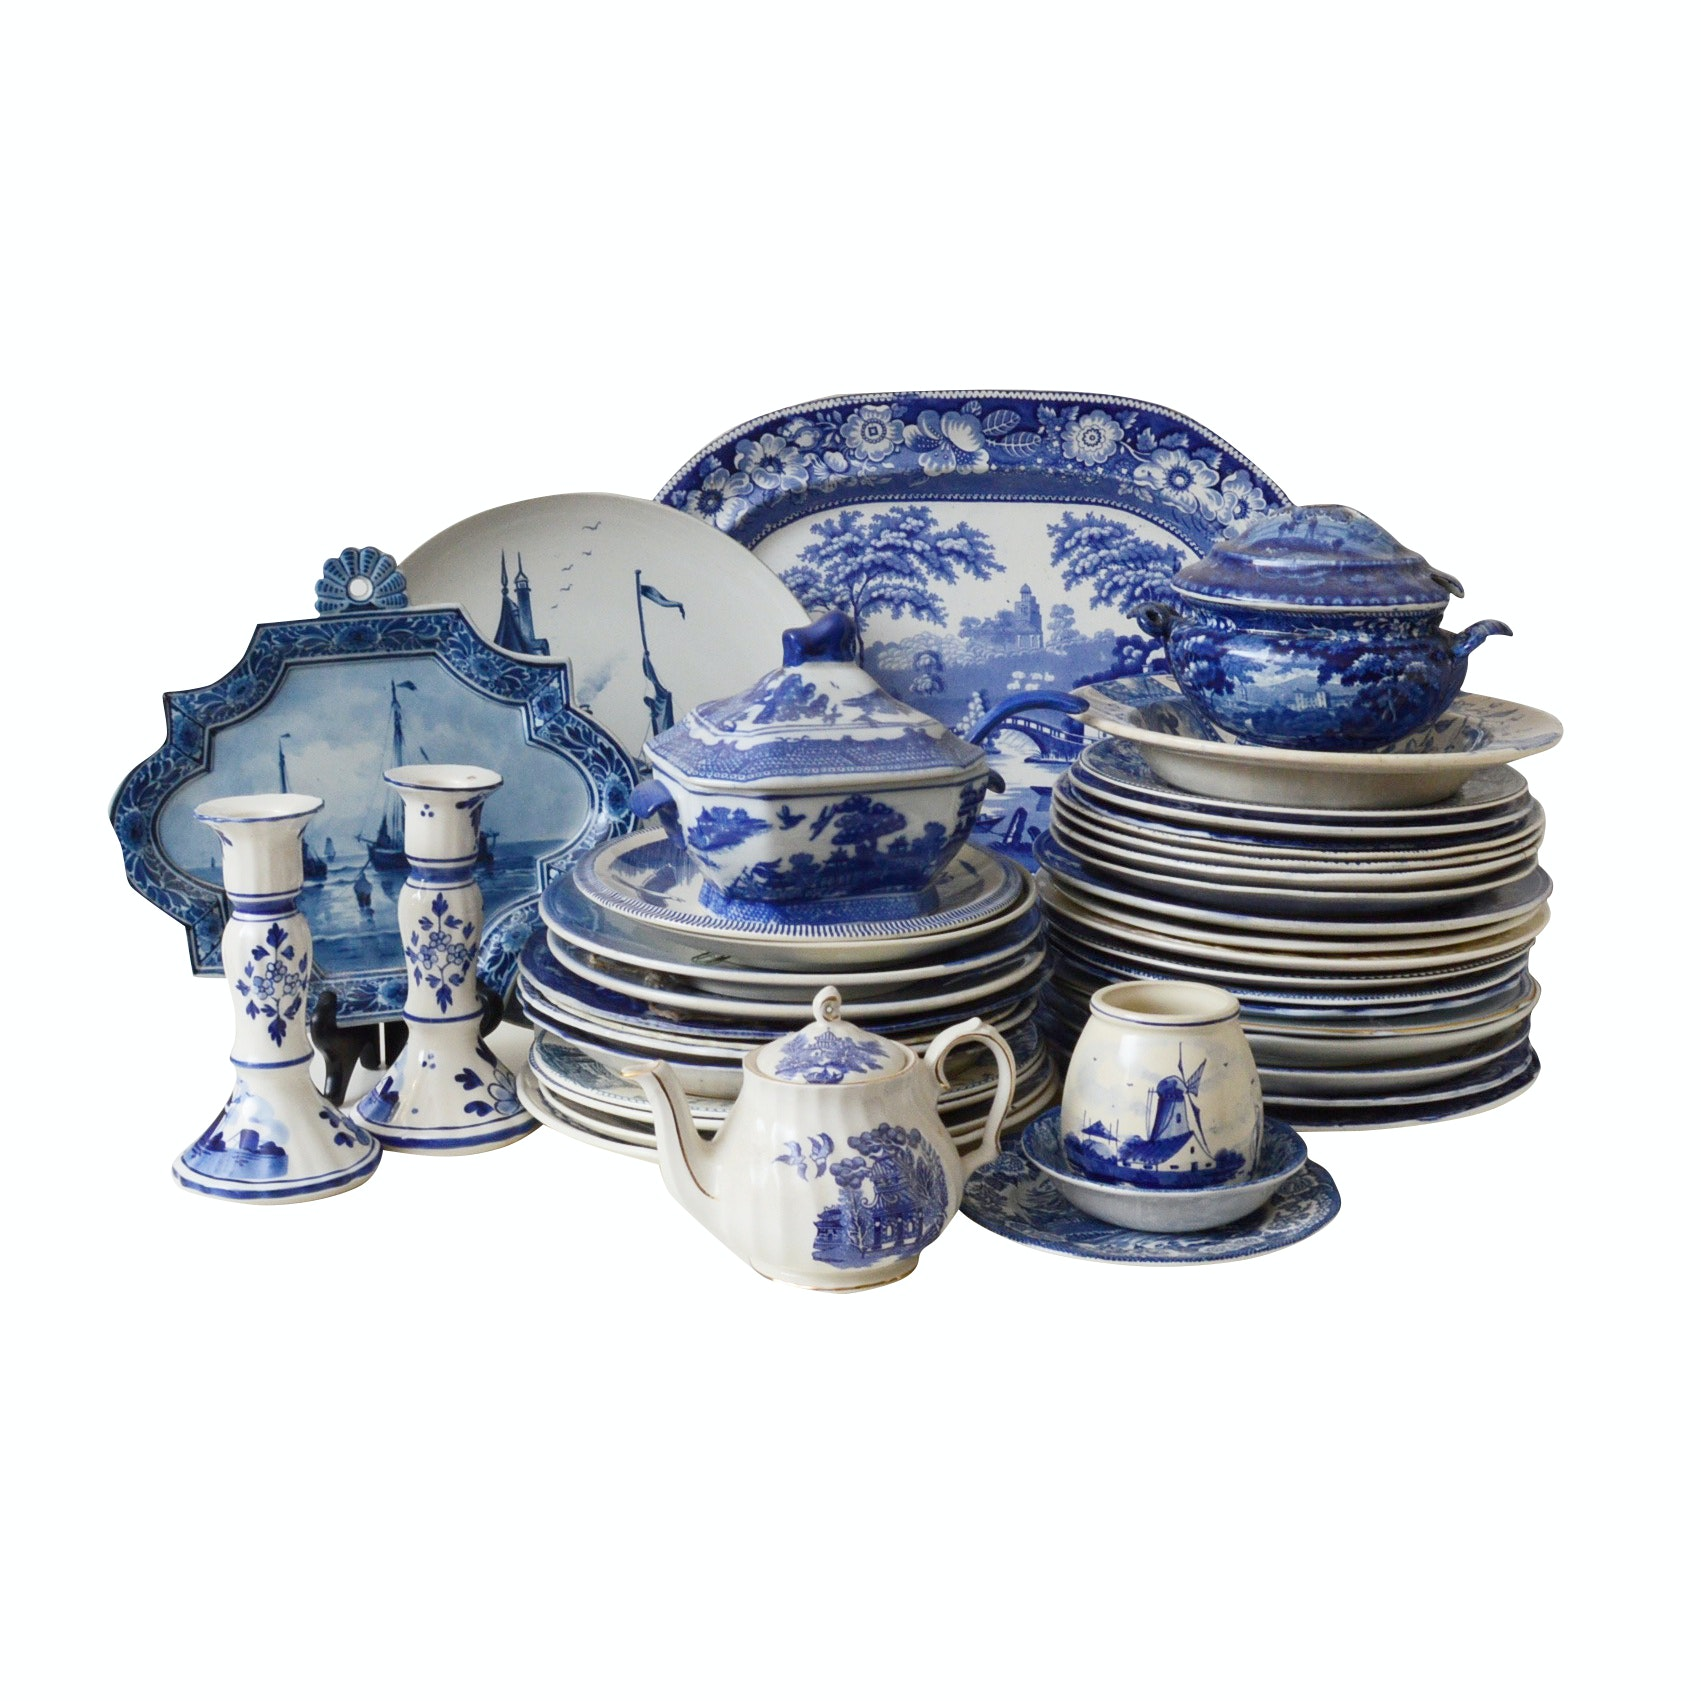 Collection of Blue and White Stoneware Tableware